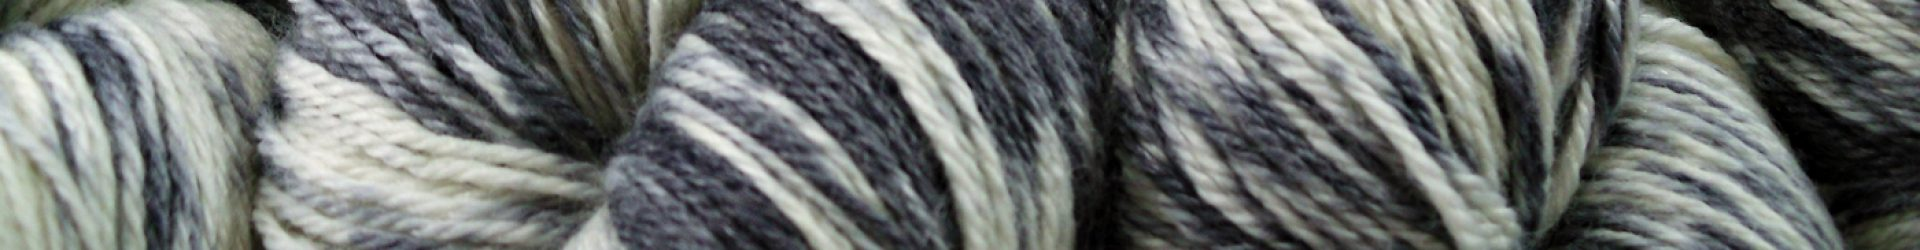 Worsted Pillowspun Twist – Cyborg (Worsted Weight)